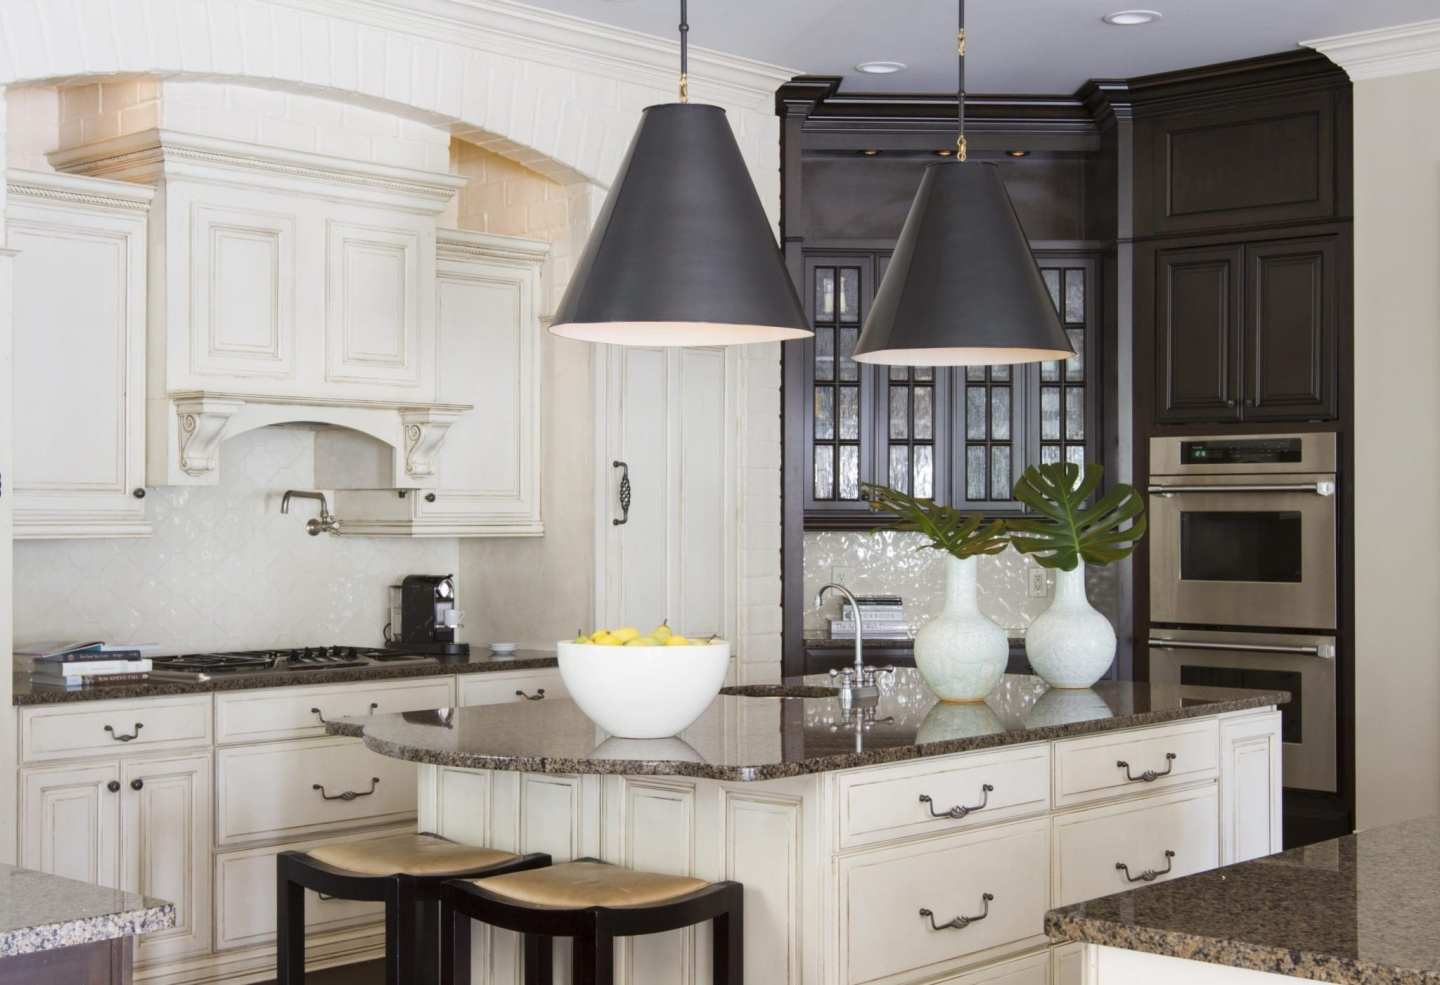 Painted brick kitchen and dark stained cabinetry. White and brown kitchen decor.